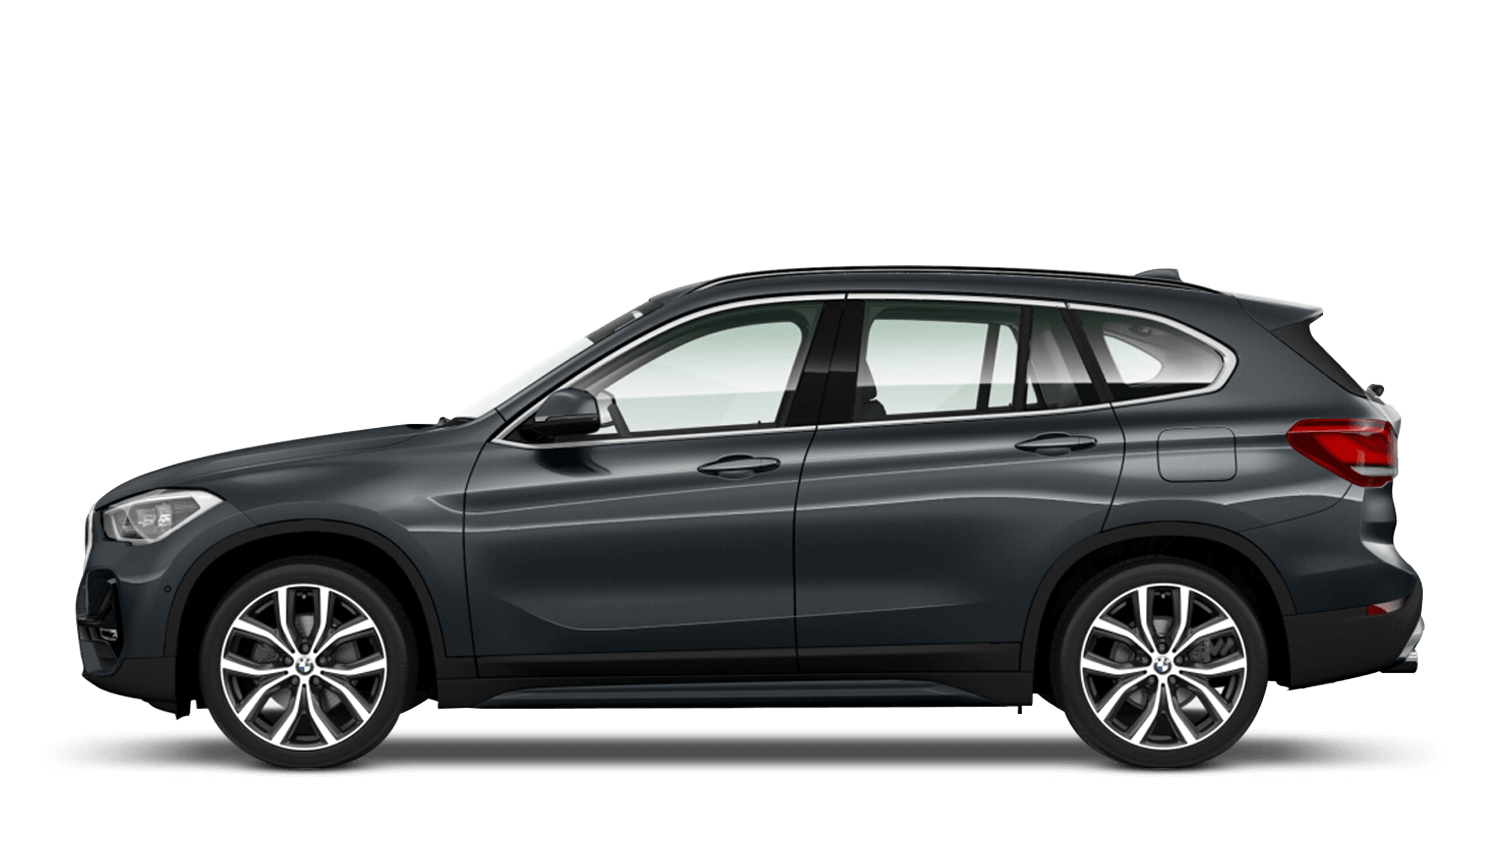 new bmw x1 for sale barons chandlers bmw. Black Bedroom Furniture Sets. Home Design Ideas